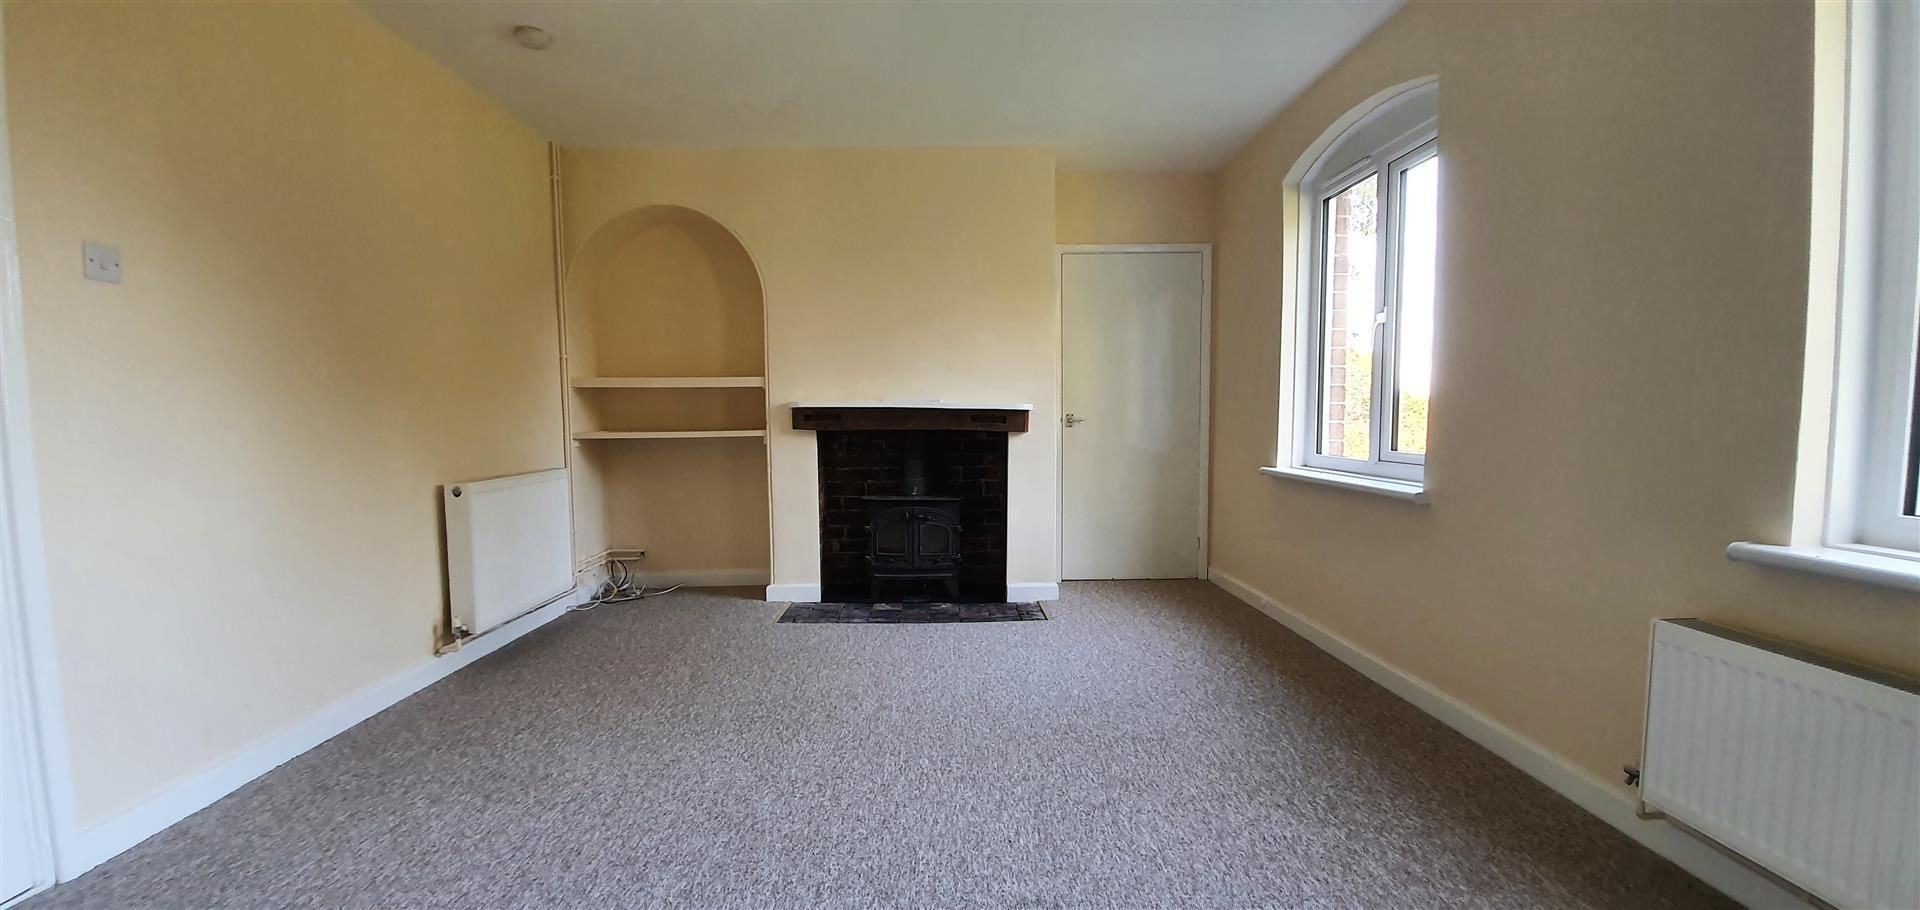 4 bed house to rent in Breinton 5